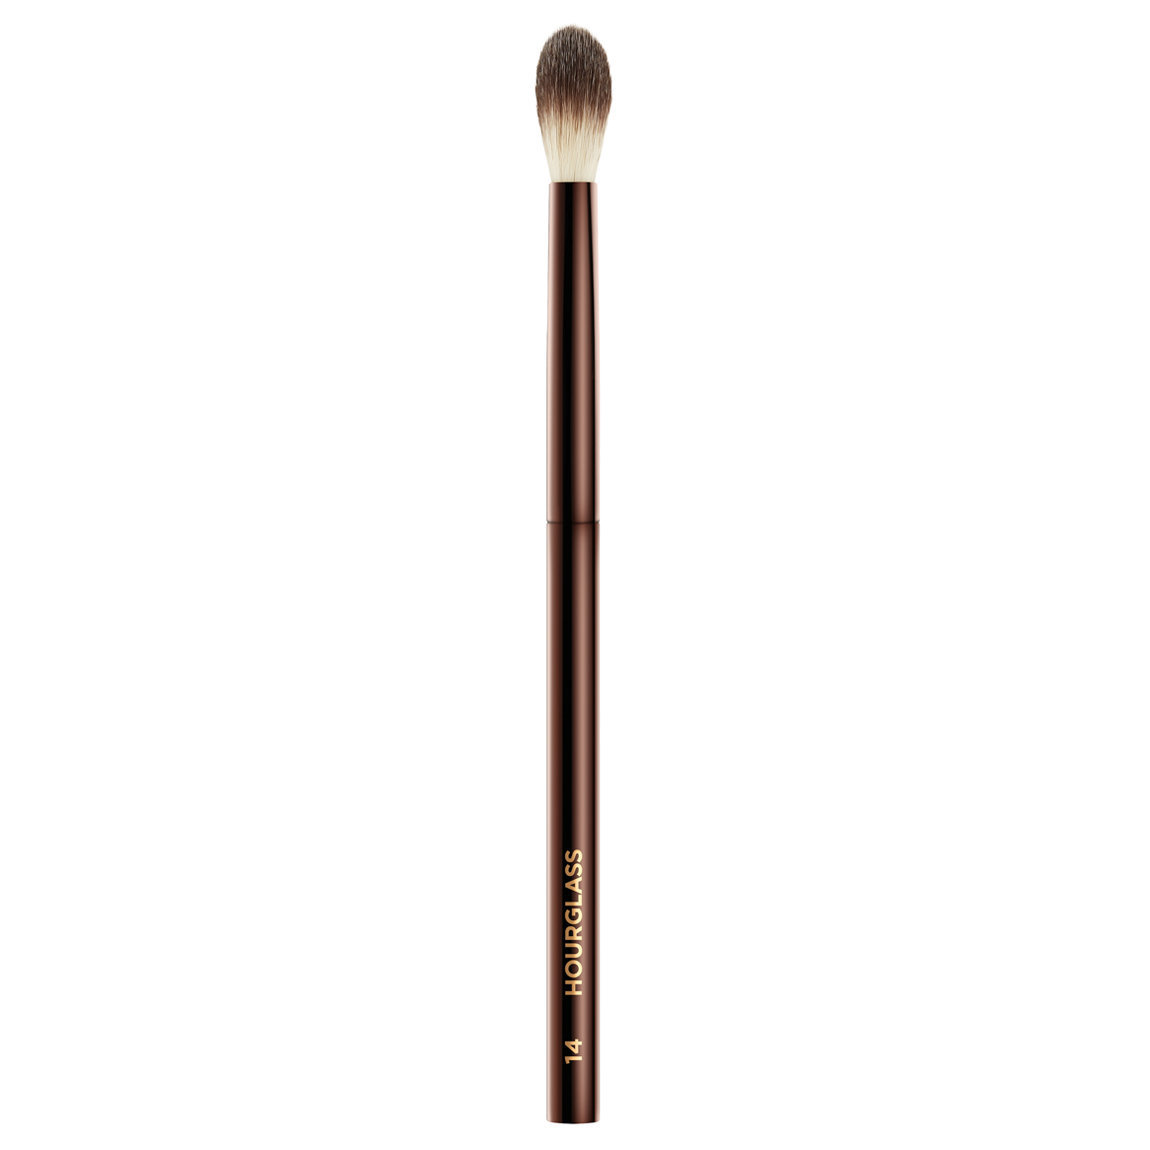 Hourglass N° 14 Detail Setting Brush product swatch.